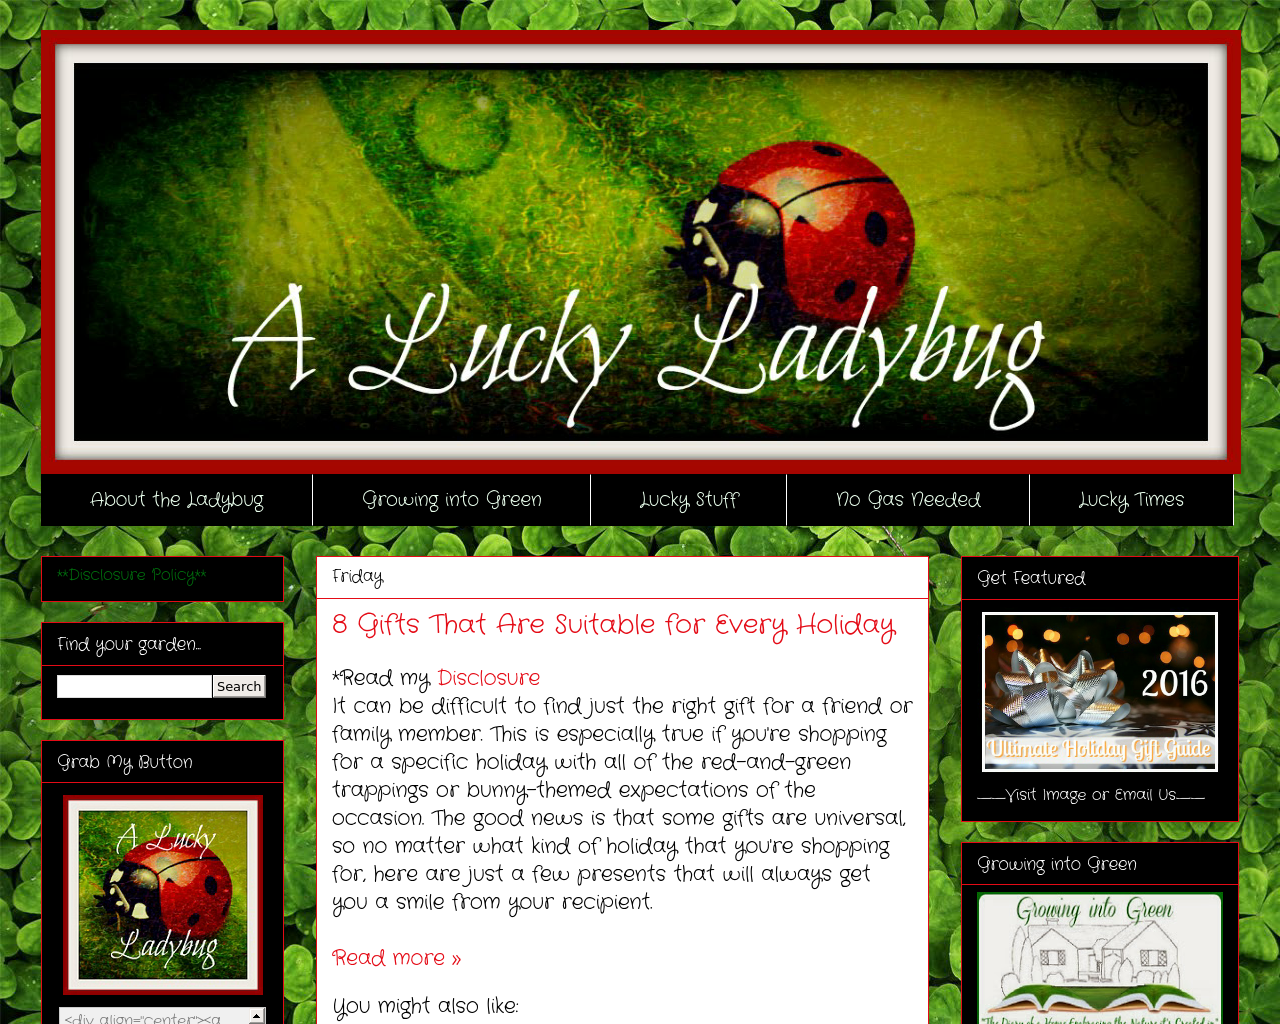 A-Lucky-Ladybug-Advertising-Reviews-Pricing